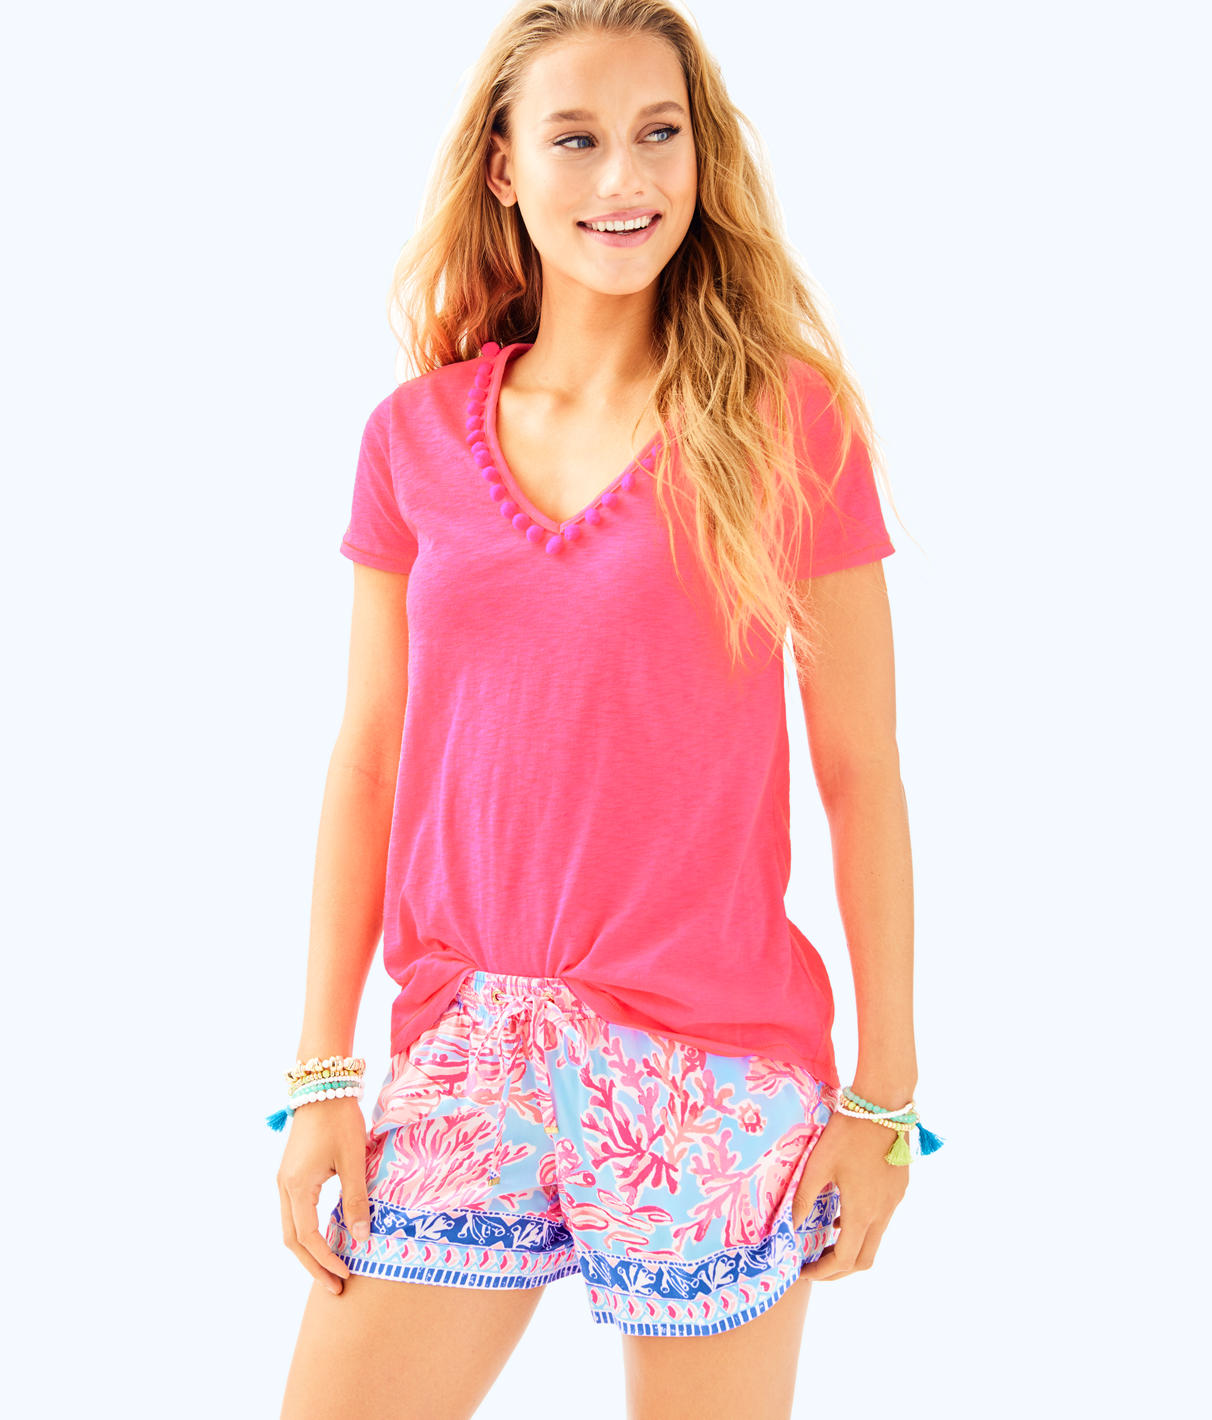 Lilly Pulitzer Lilly Pulitzer Womens Etta Top